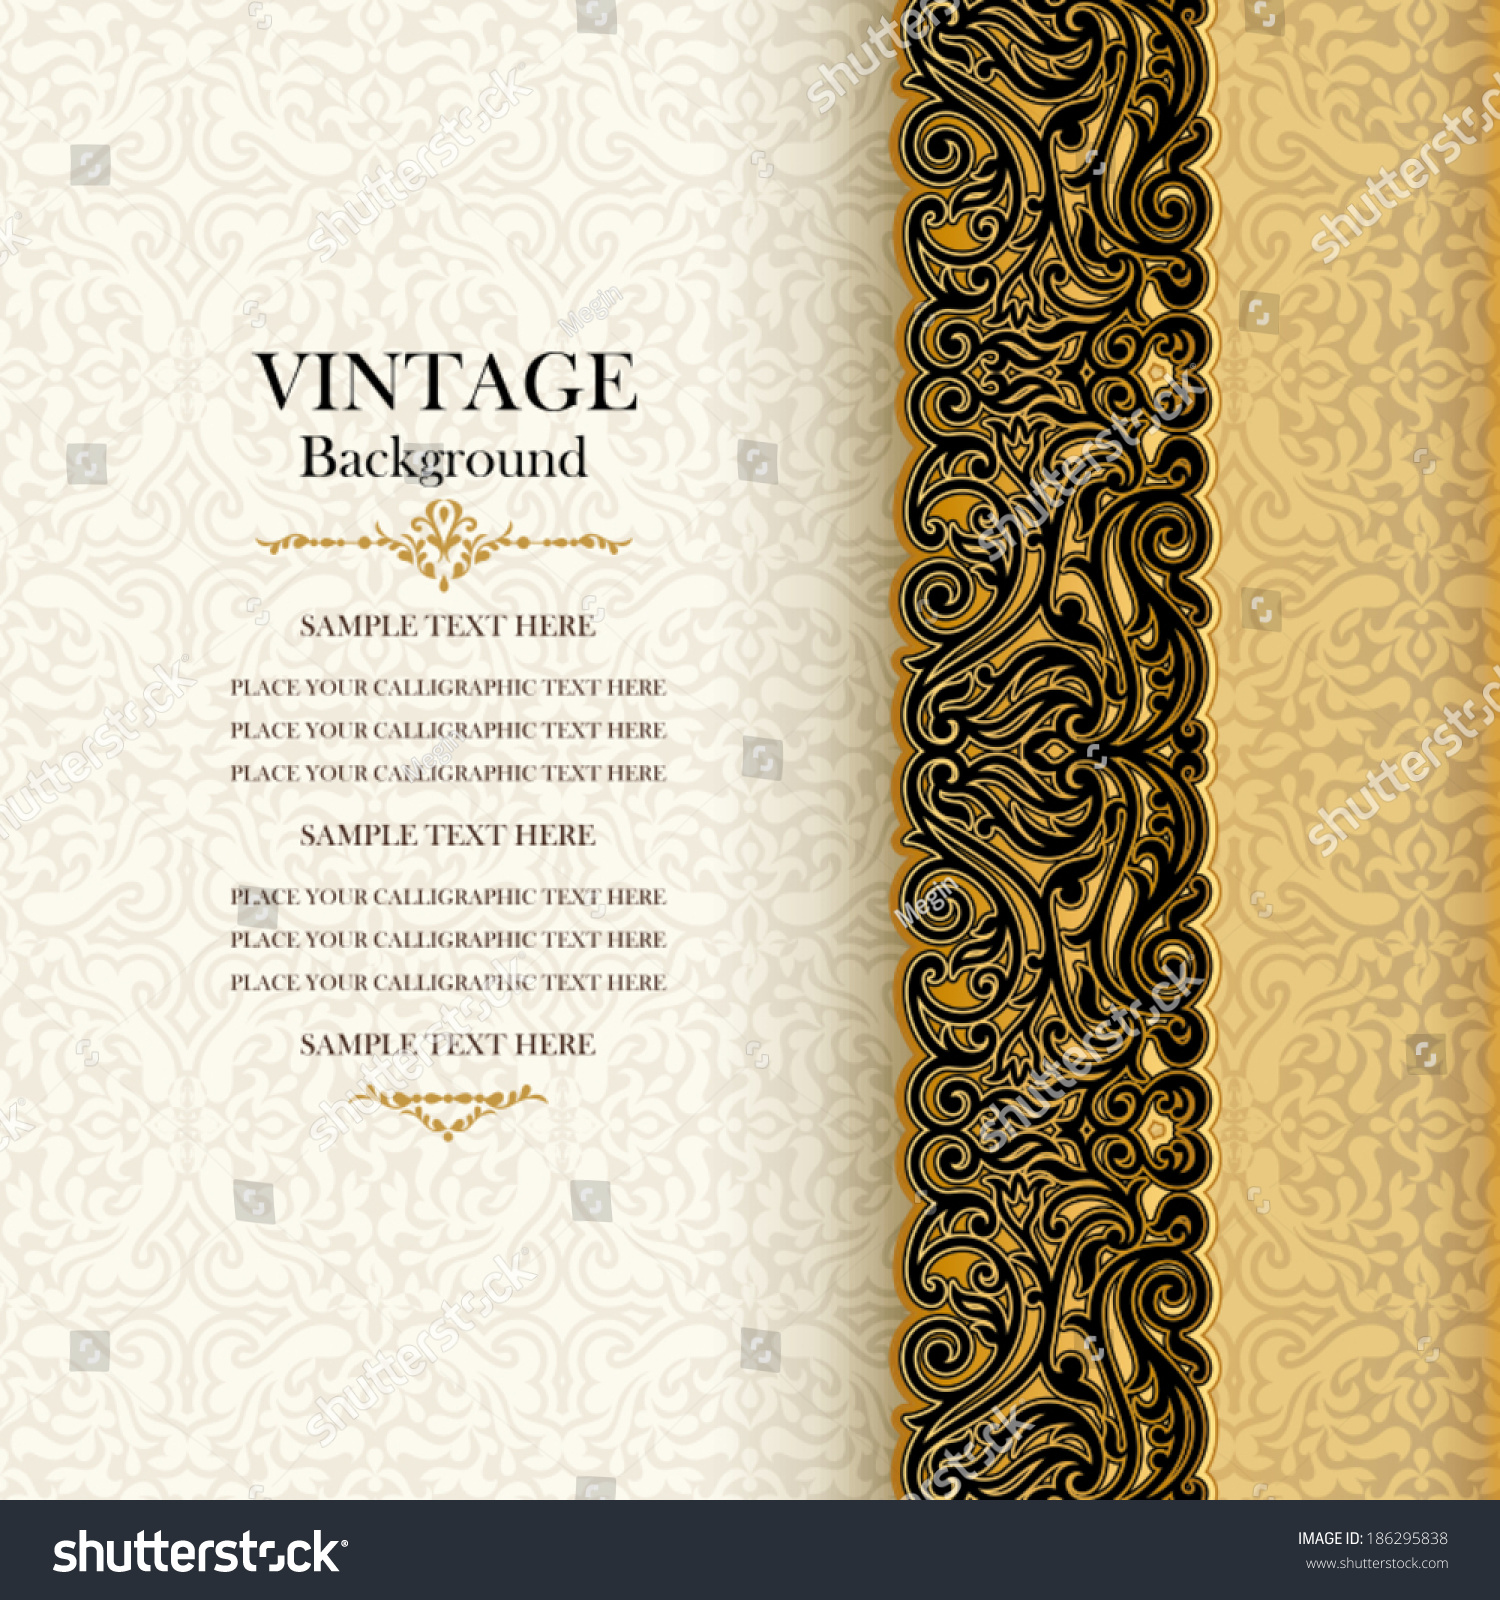 vintage background antique invitation card royal stock vector vintage background antique invitation card royal greeting lace and floral or nt beautiful